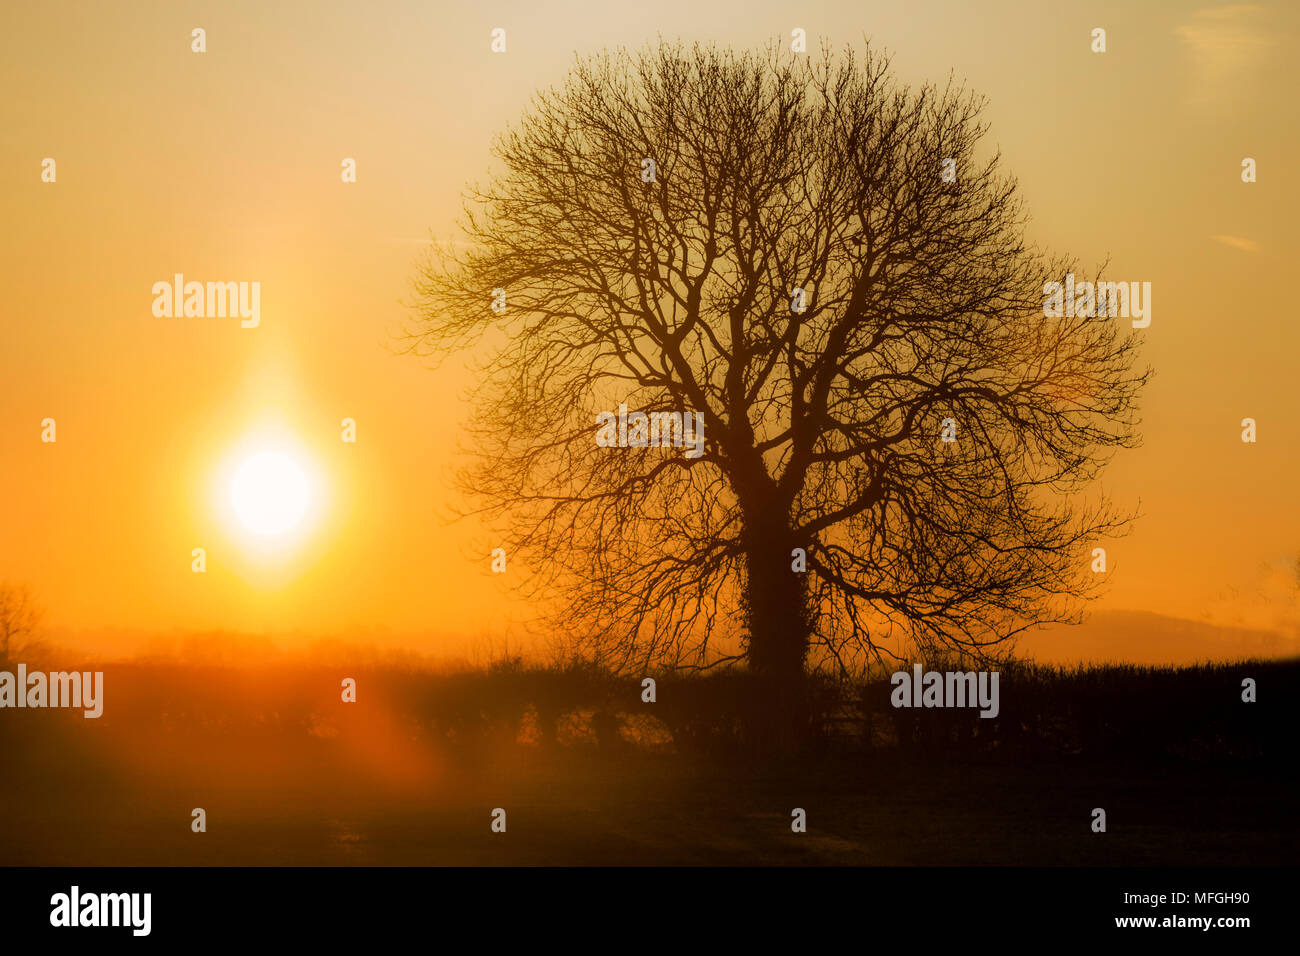 Sunrise over the fields - Stock Image